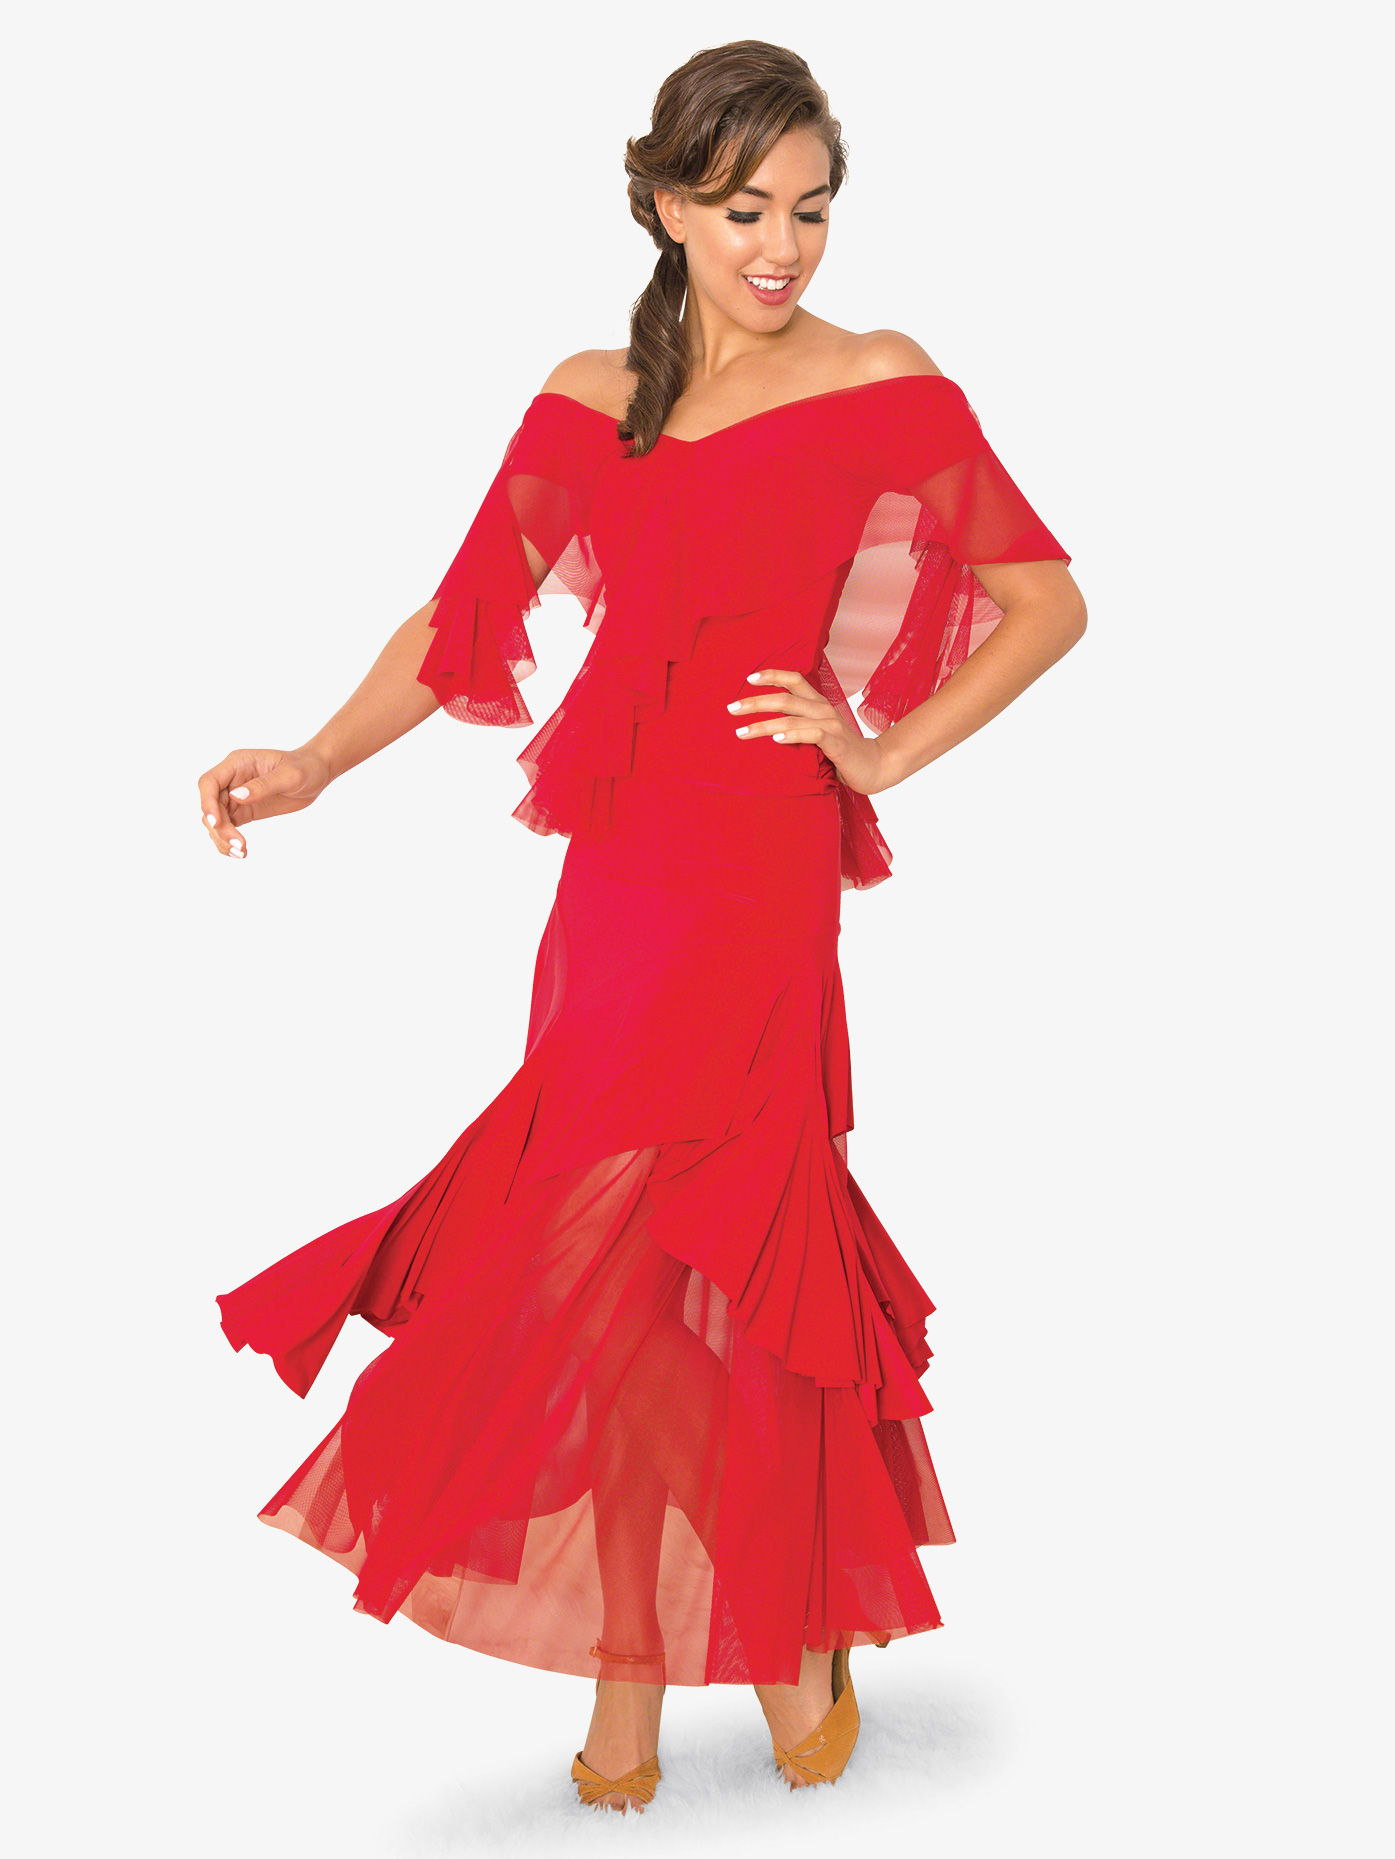 Dance America Womens Ruffled Basque Mesh Ballroom Dance Skirt S819